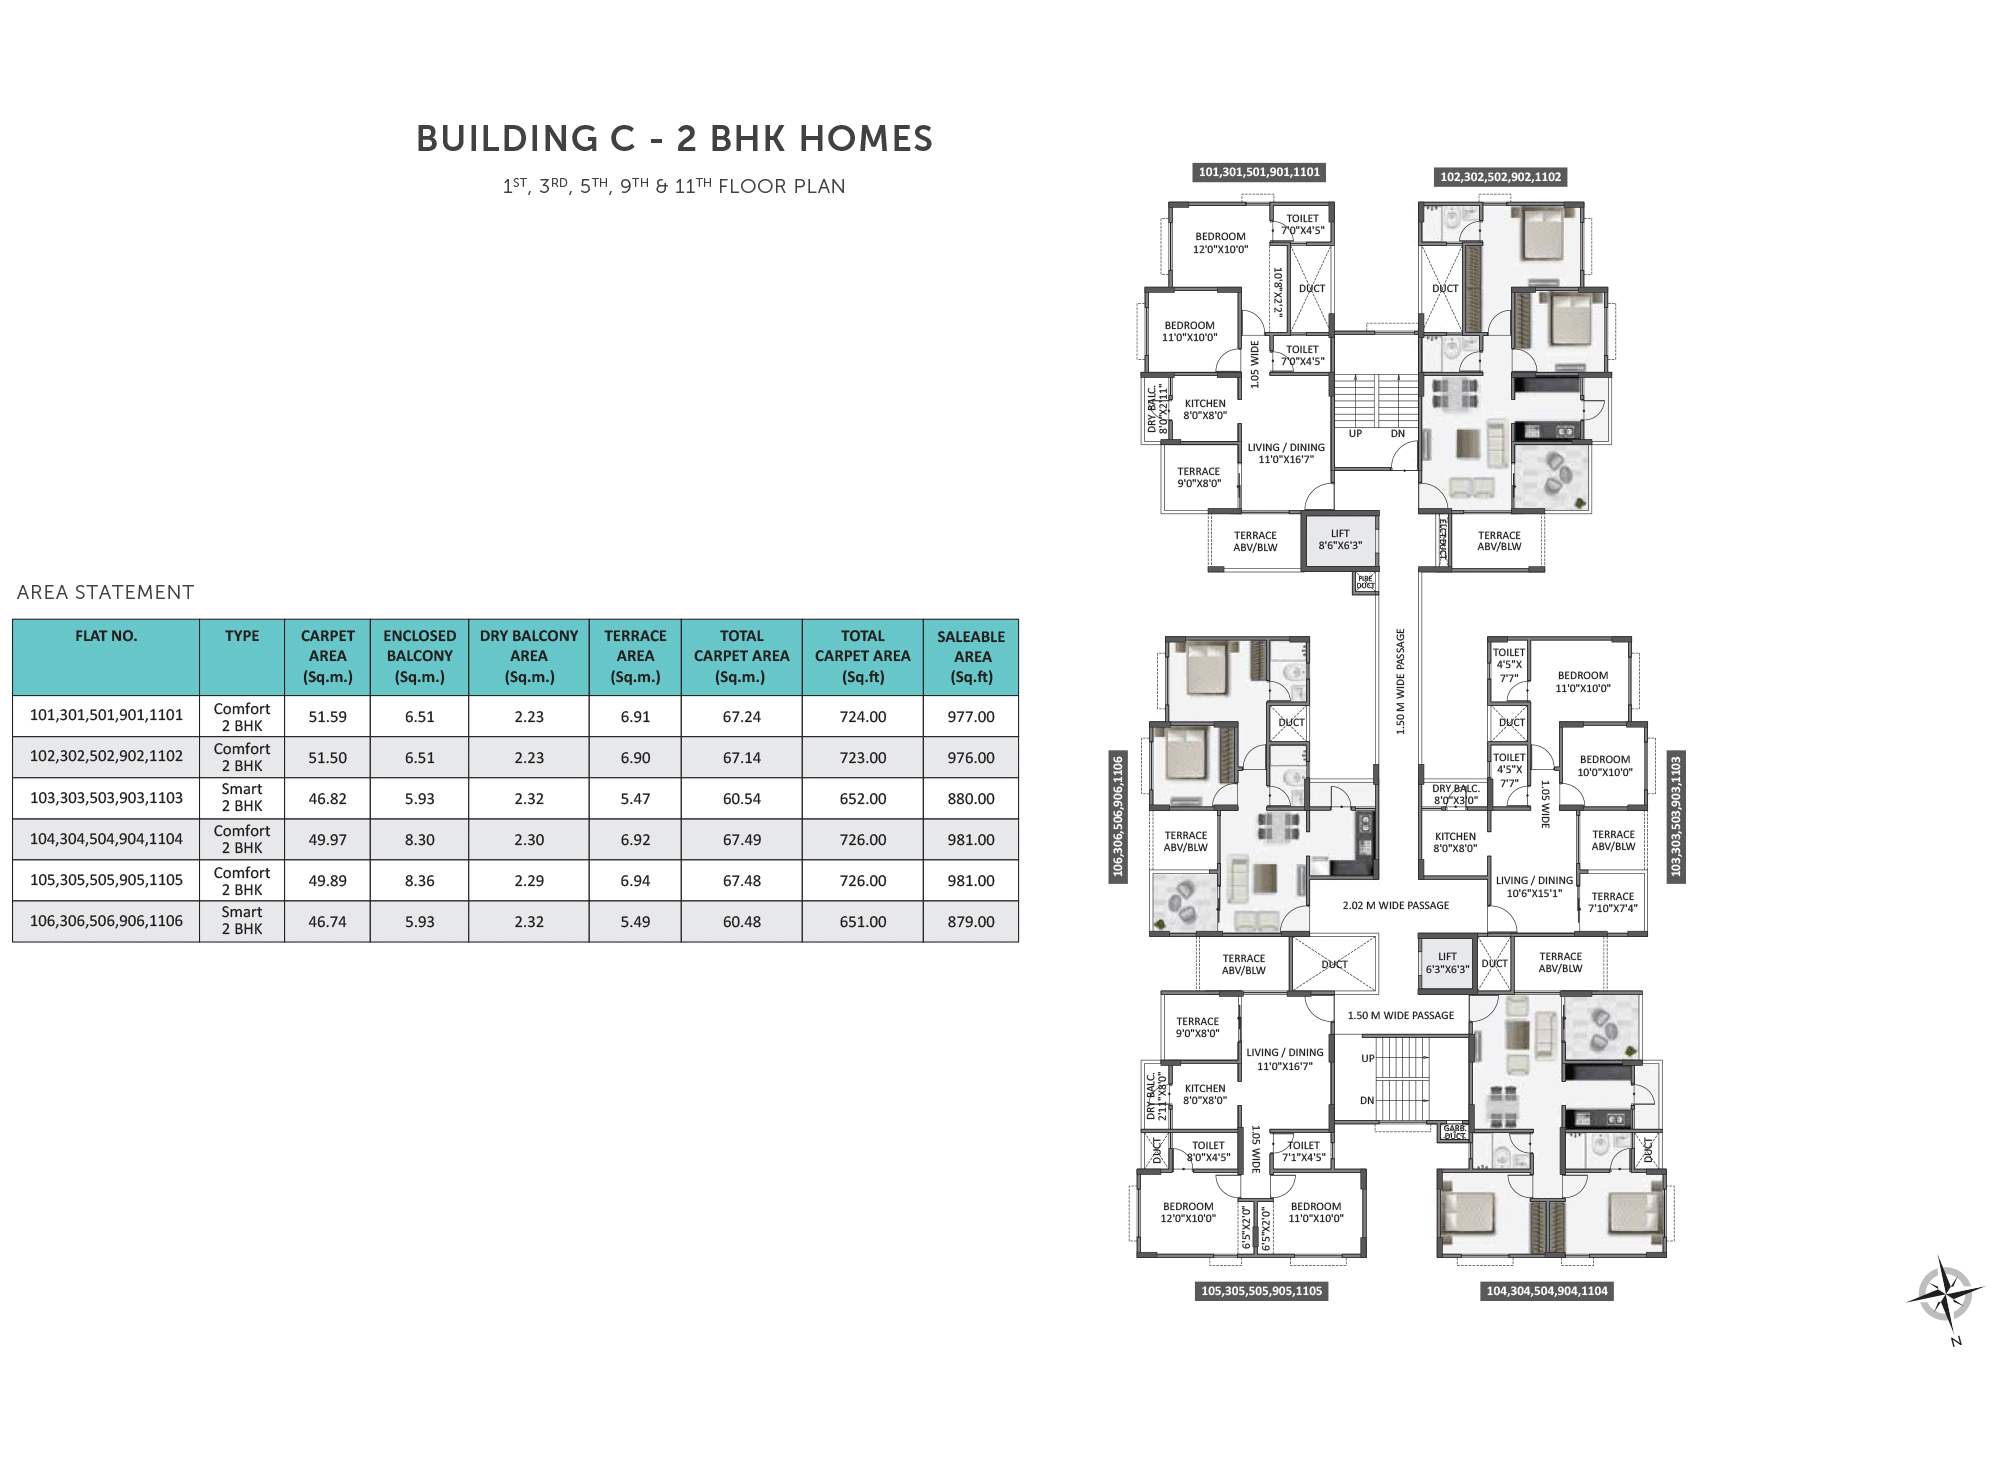 Equilife Homes_Building C 2BHK 1,3,5,9,11 FLOOR PLAN